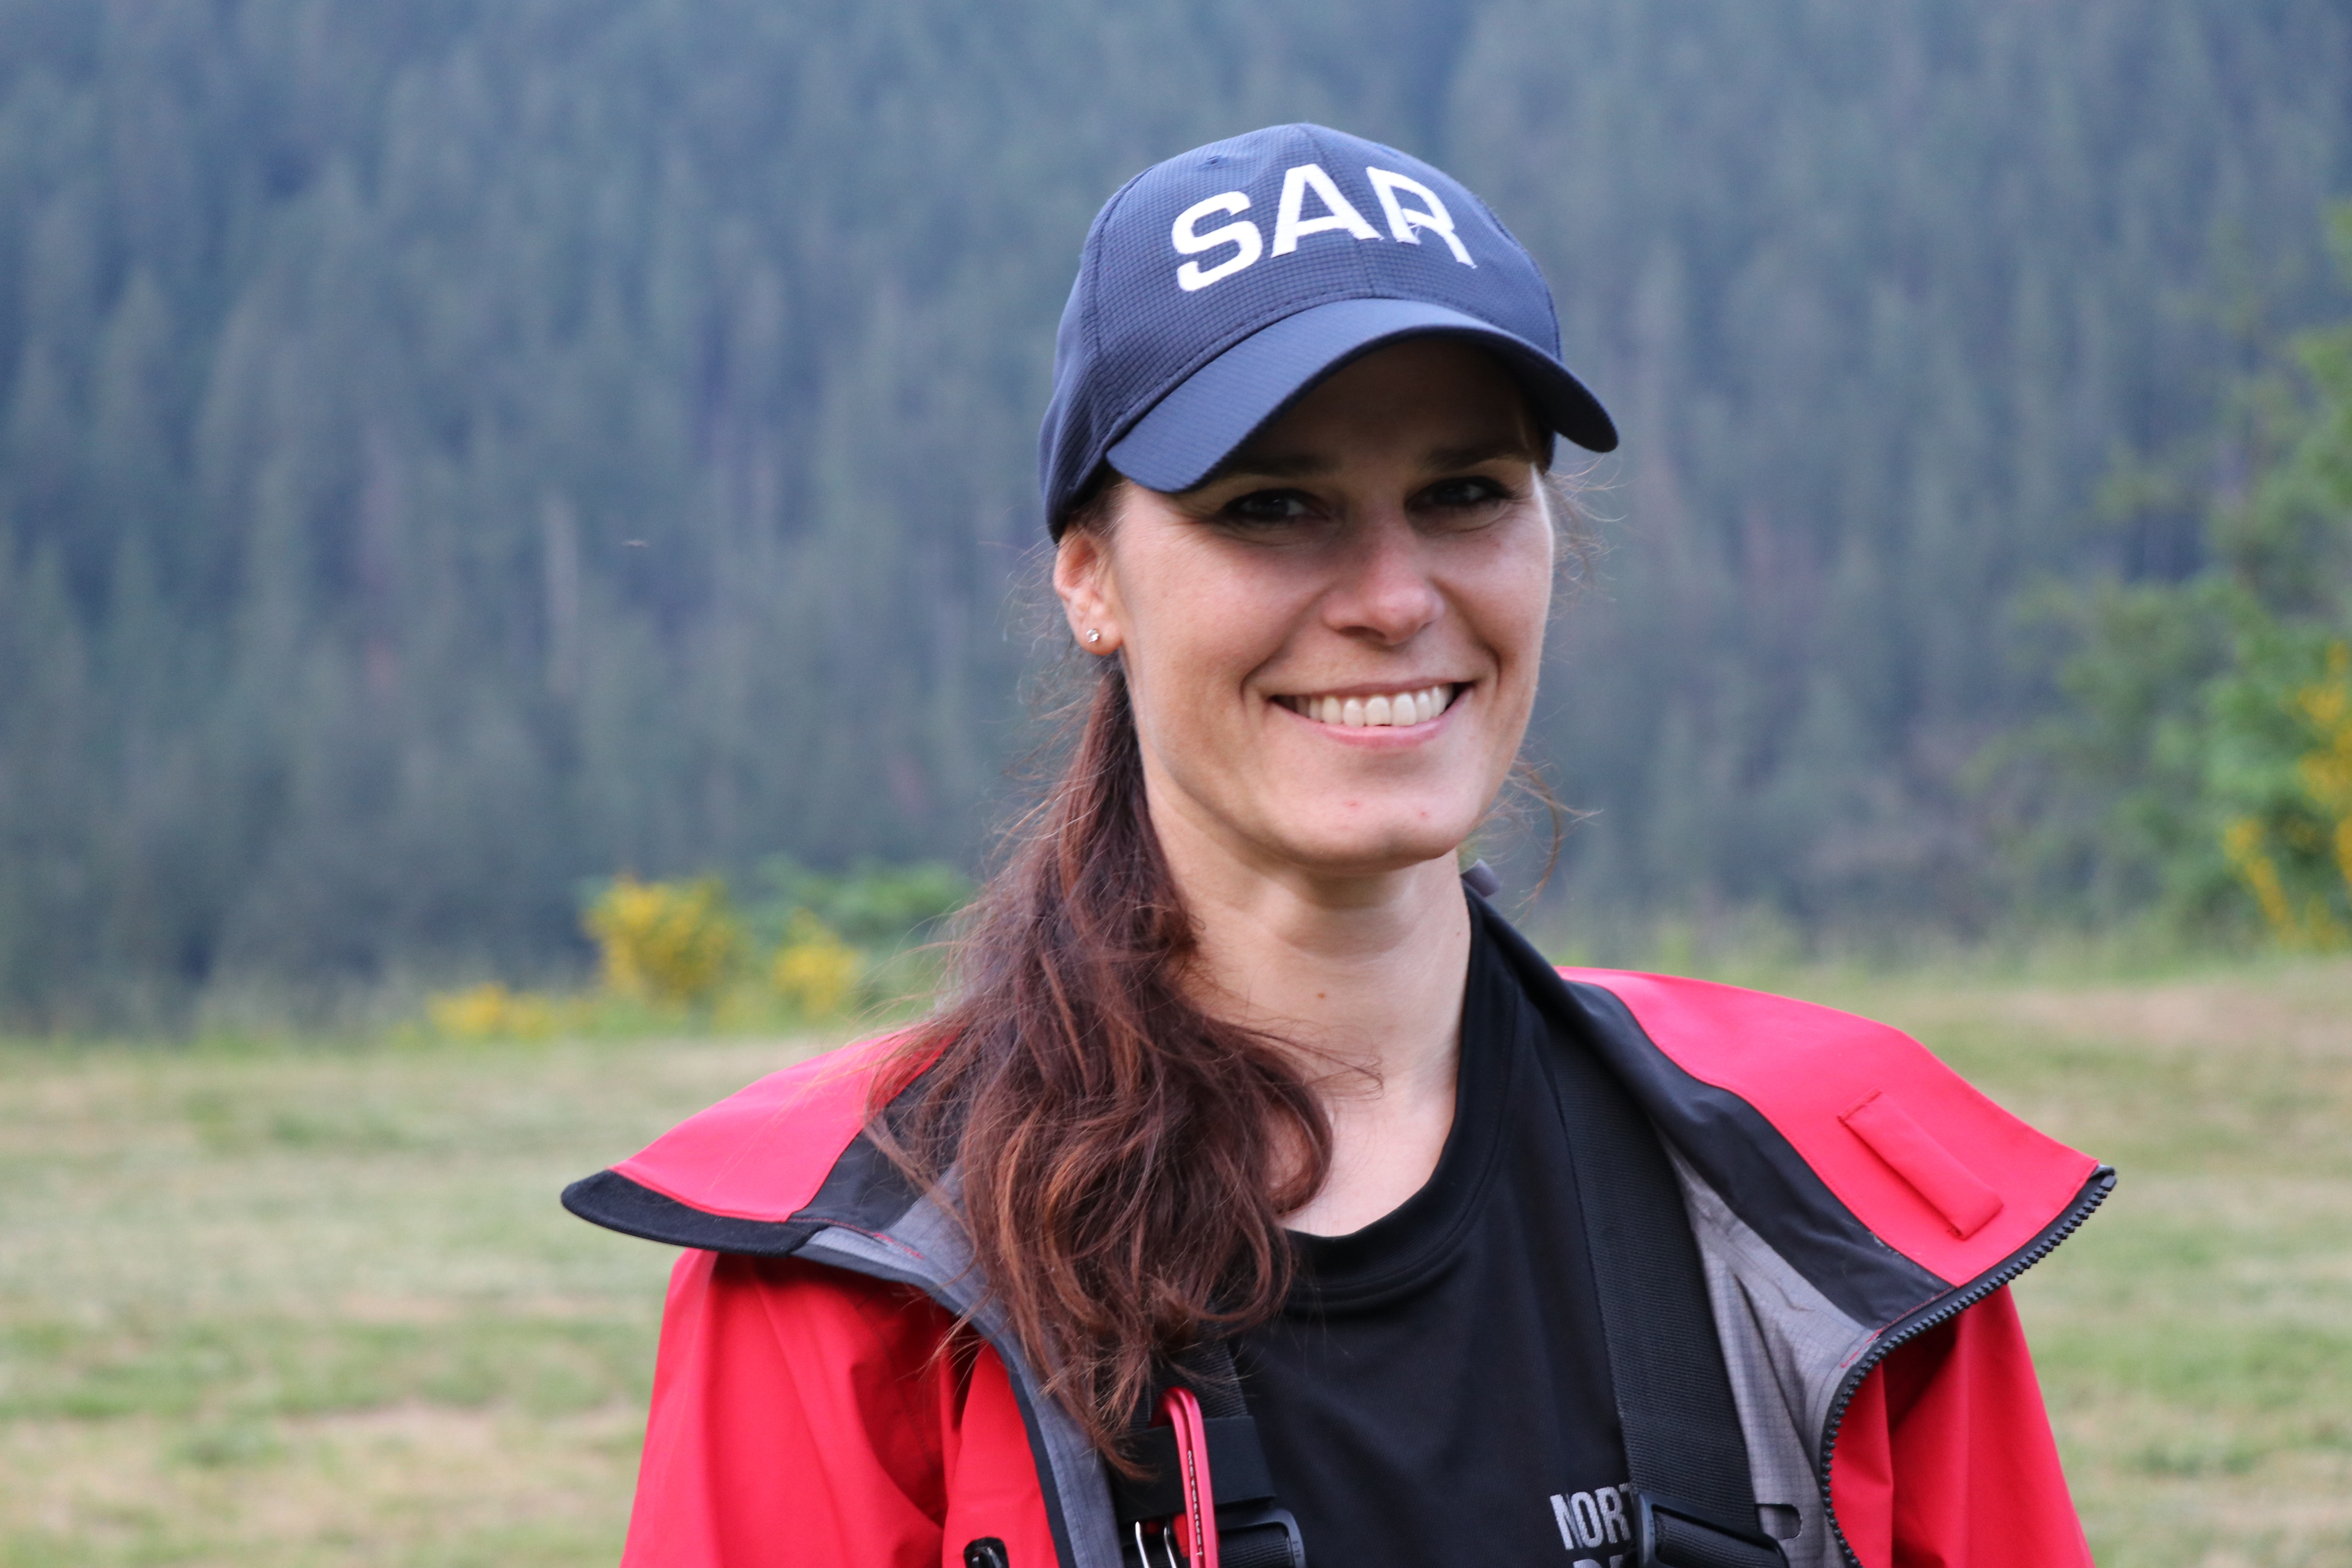 Maria Masiar recently completed the gruelling two-year training program to become a full-fledged member of NSR. (Clare Hennig/CBC)